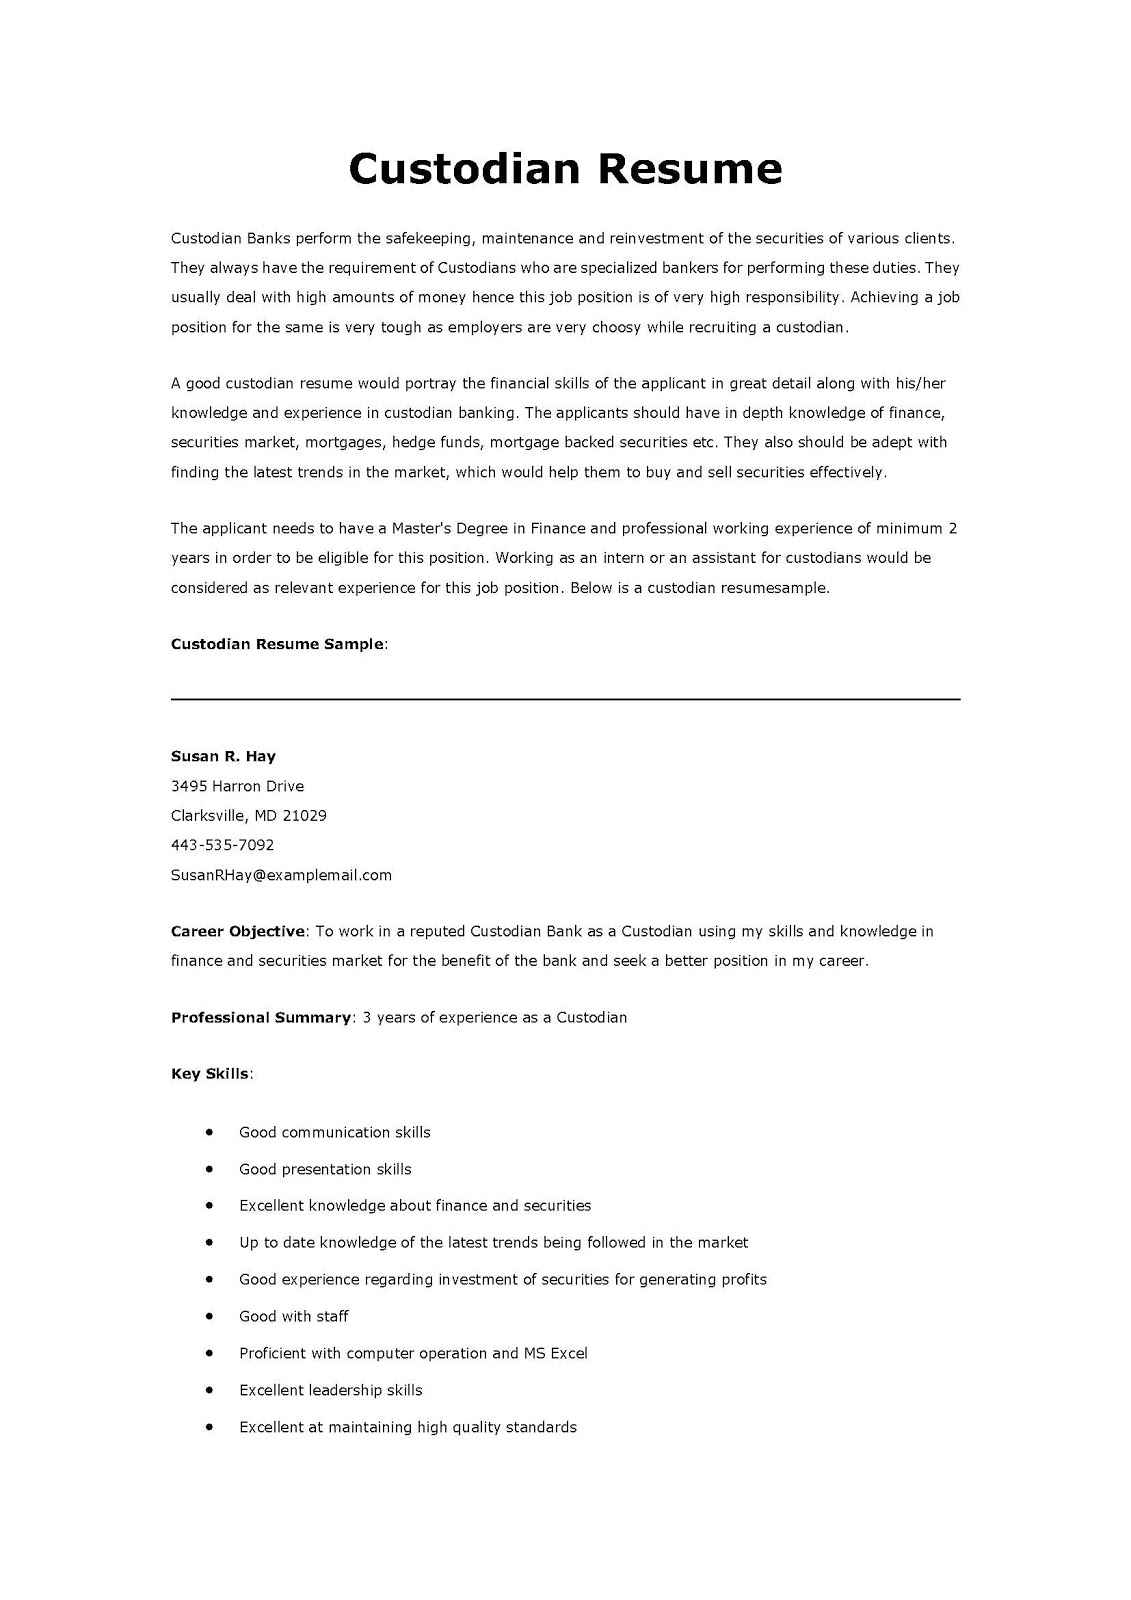 resume personality traits resume summary resume